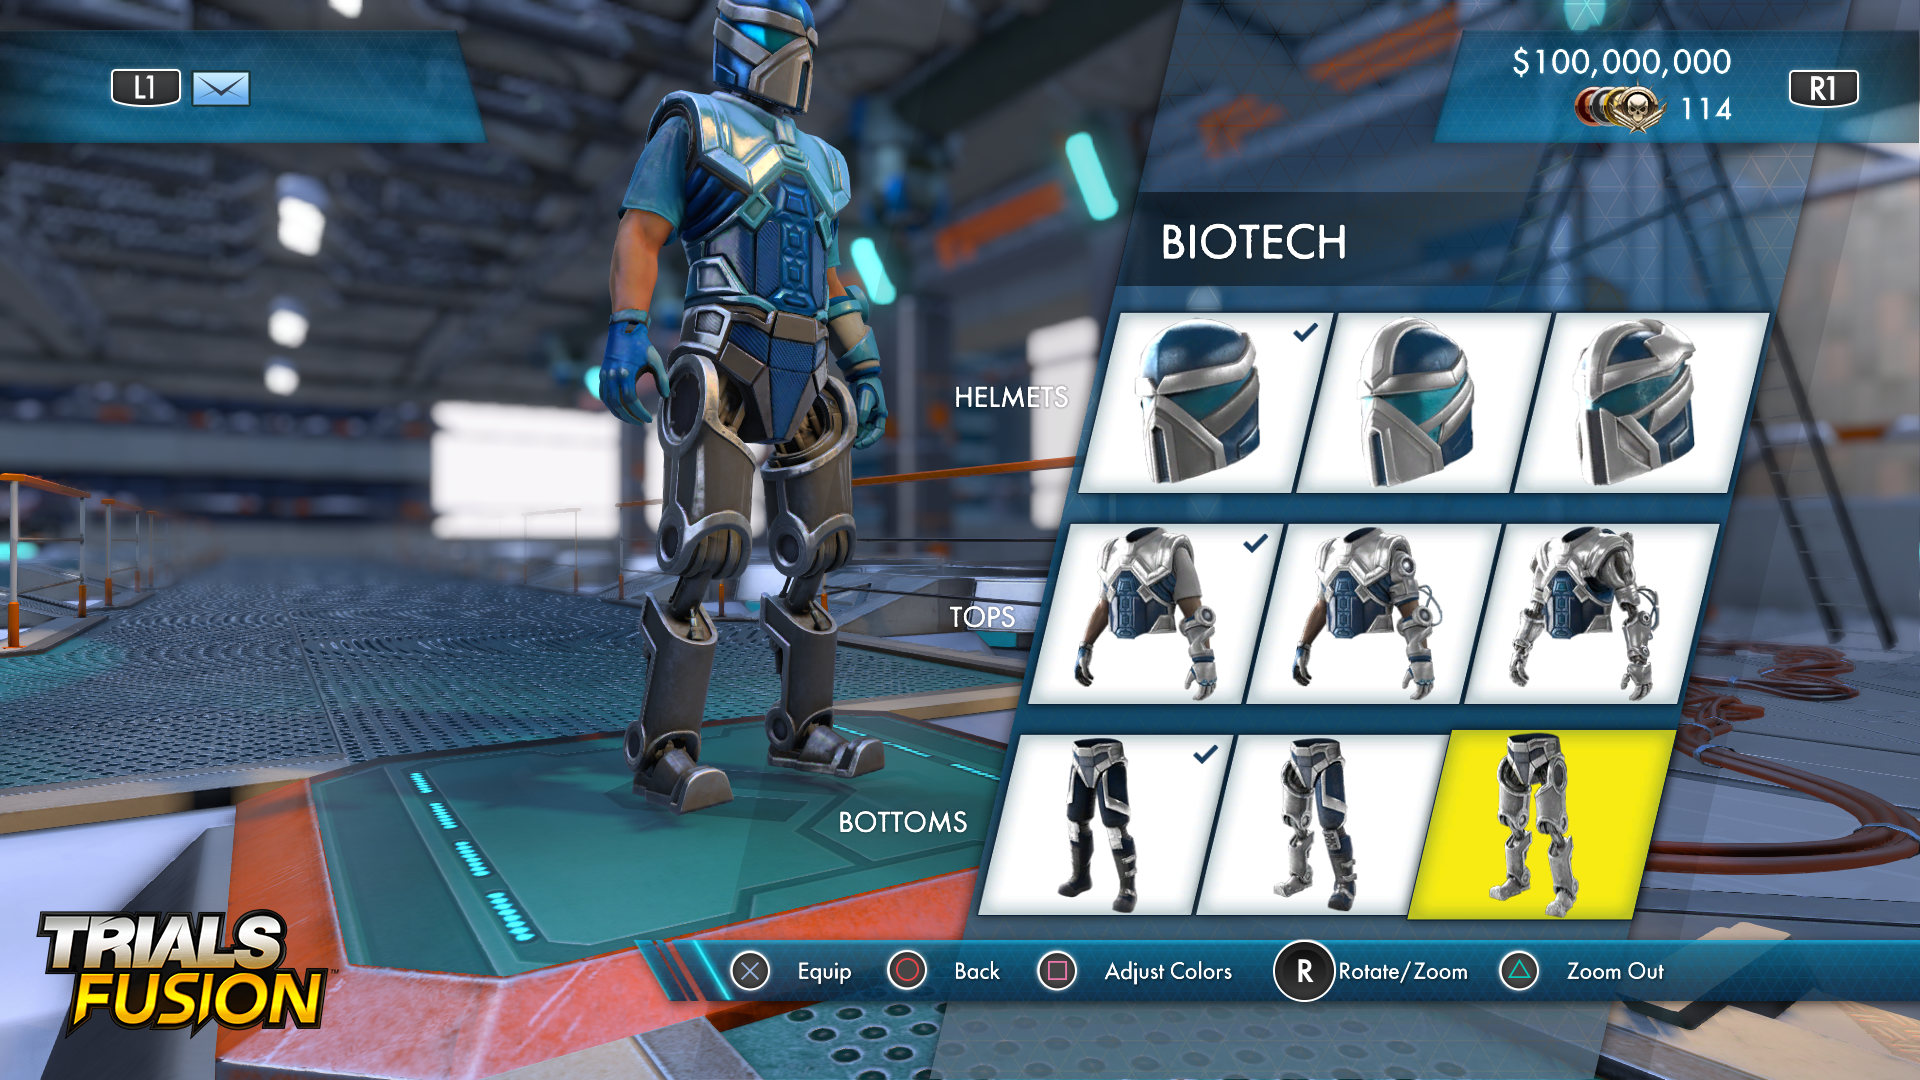 trials_fusion_garage_biotech_ps4